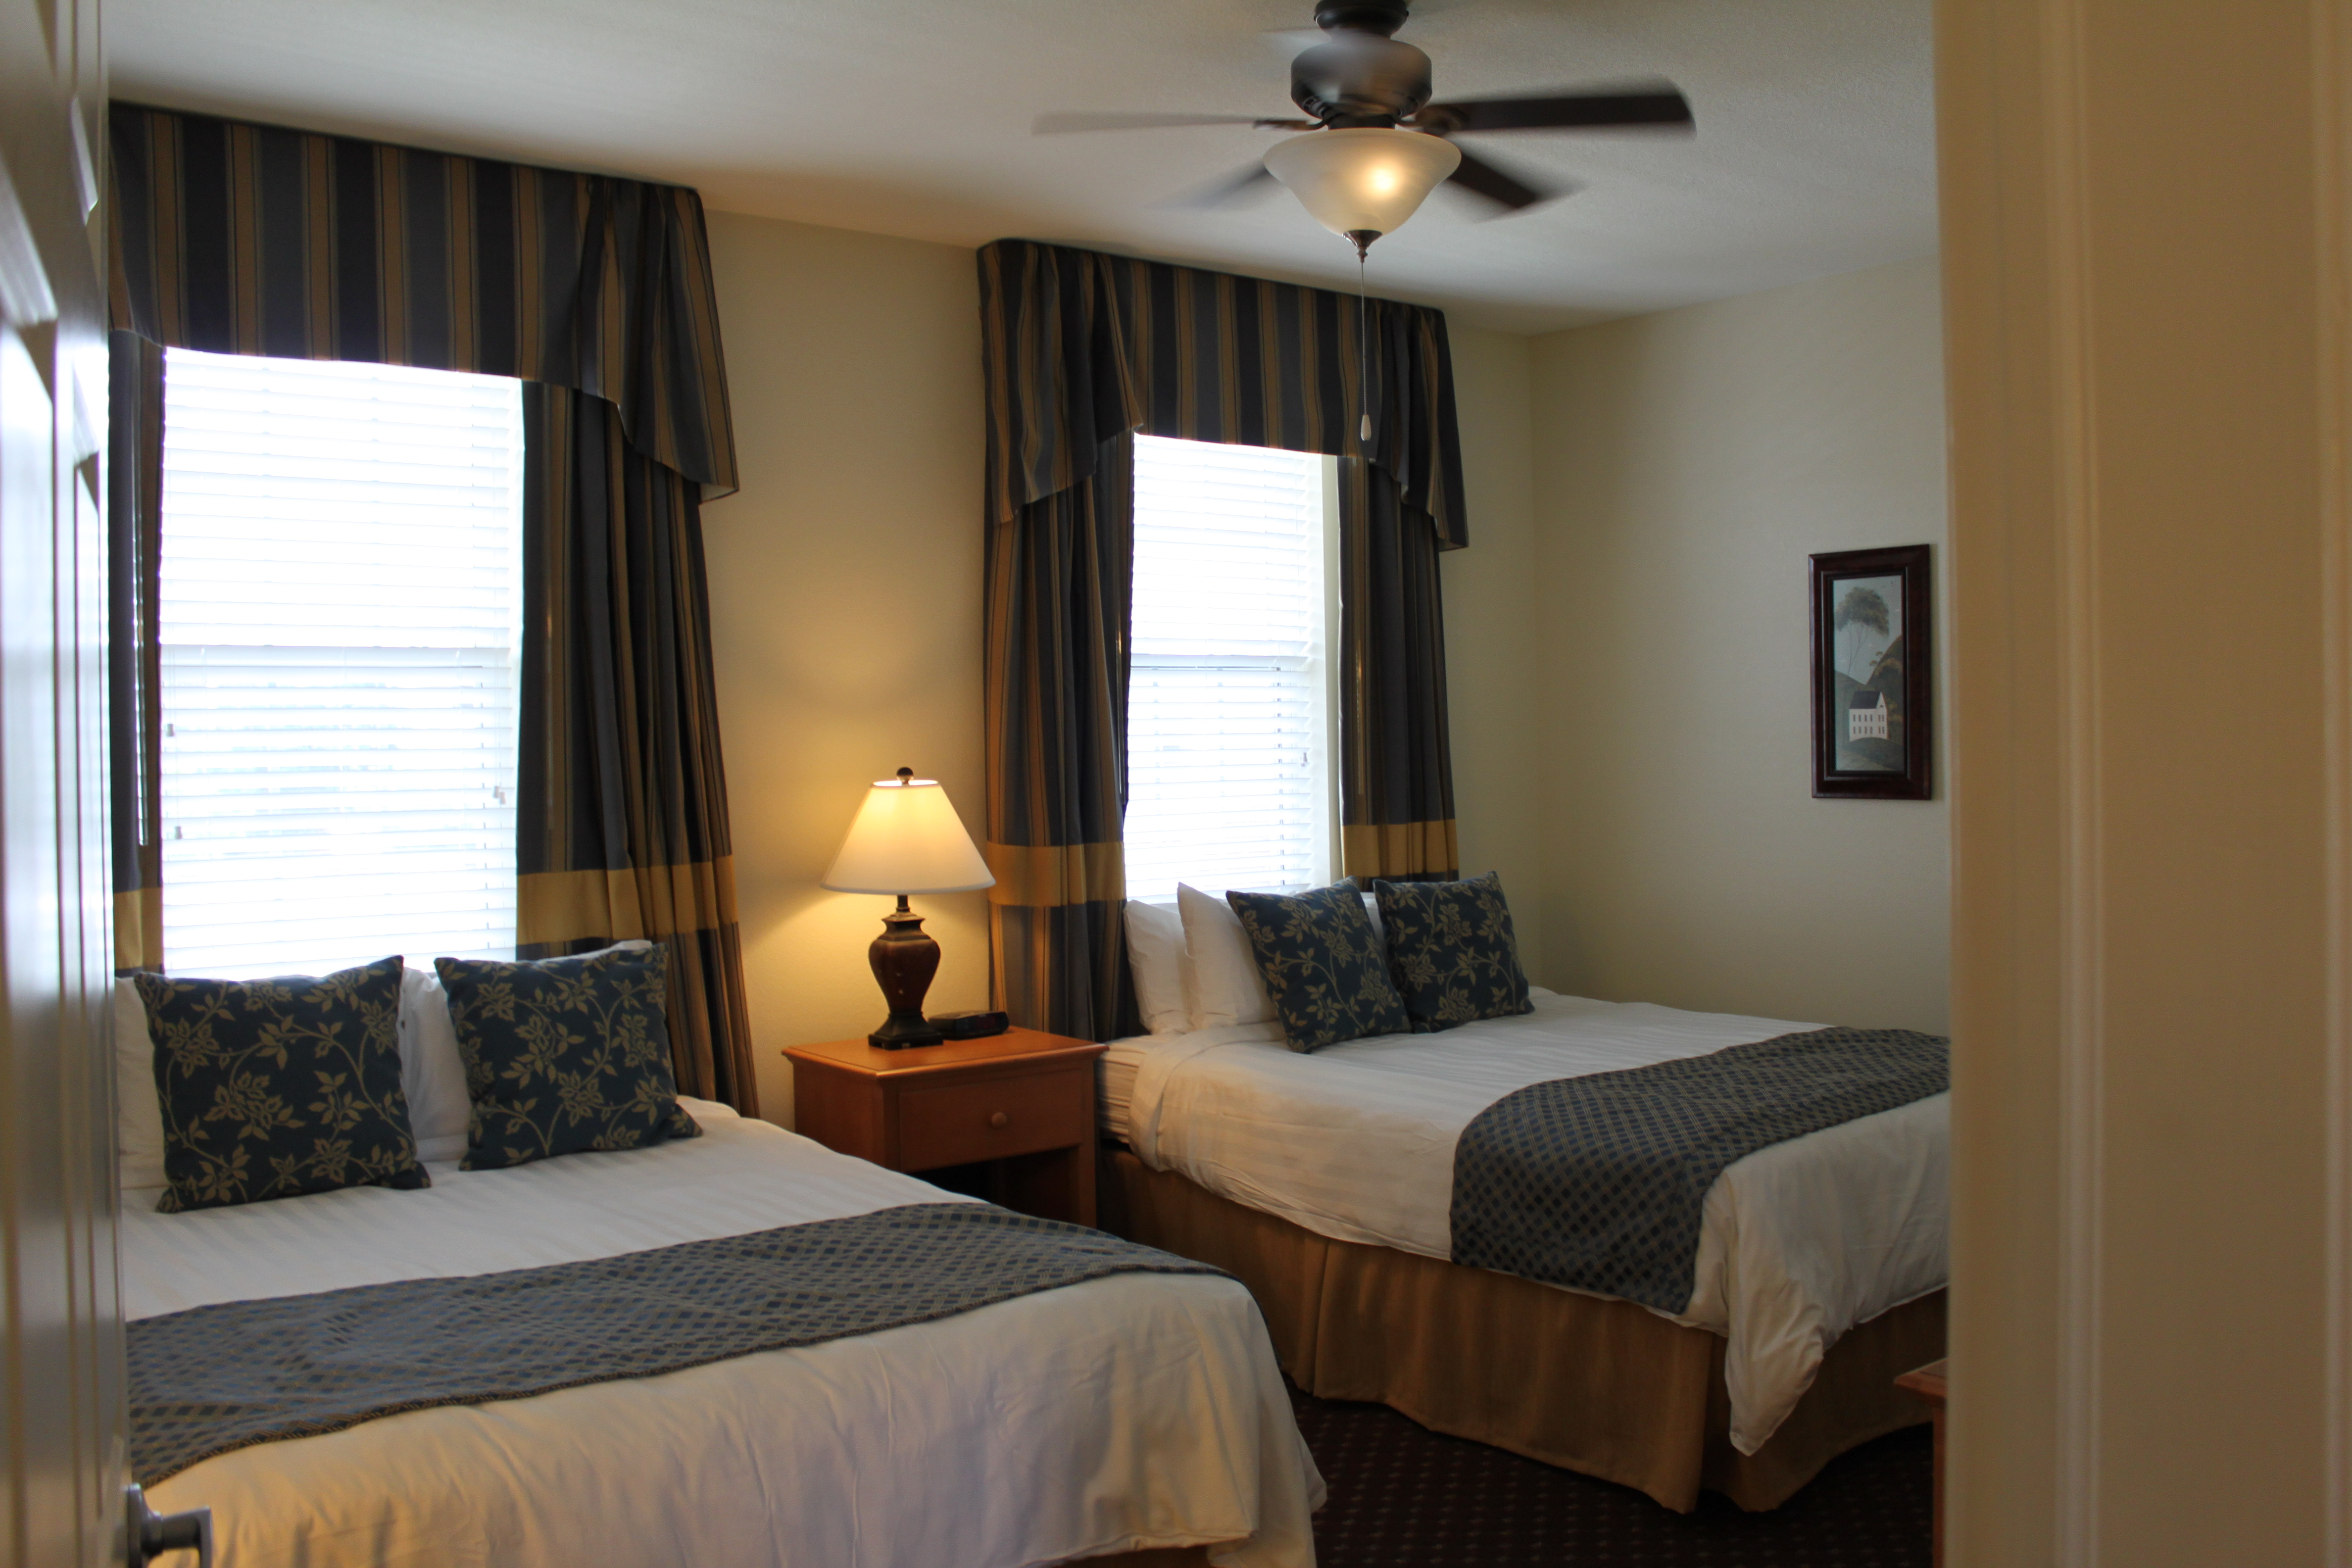 Nashville Hotels With 2 Bedroom Suites 28 Images 2 Bedroom Hotel Suites In Nashville Tn For